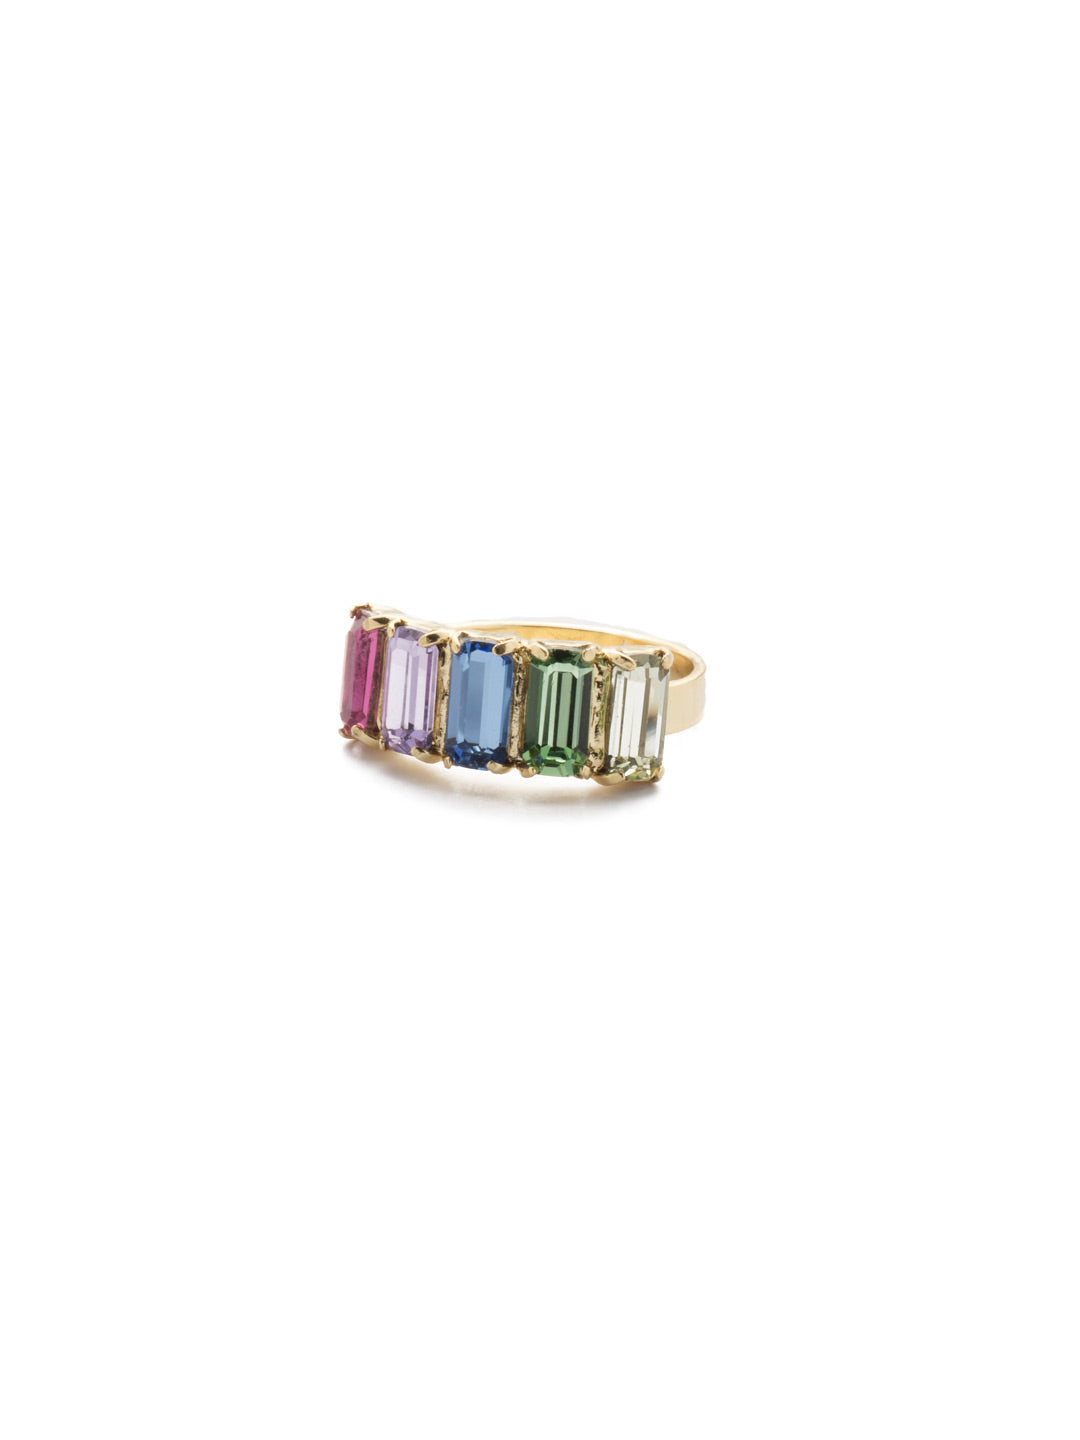 Arden Band Ring - REF29BGPRI